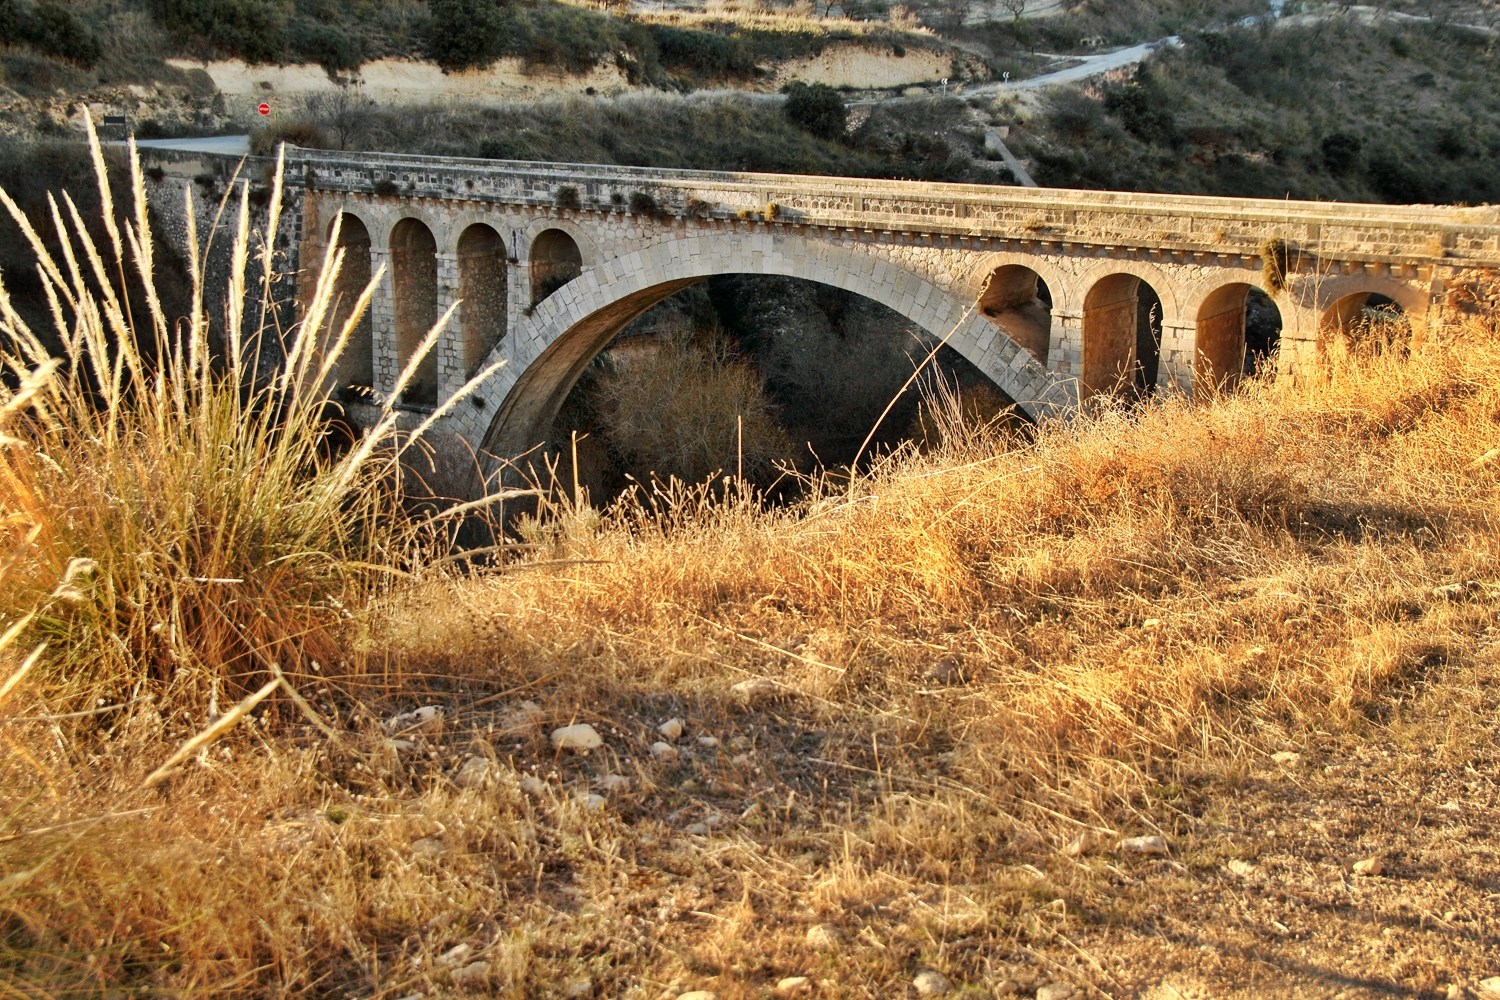 """The Roman Bridge"" - Rio Cacin, Cacin, Granada - B05225"